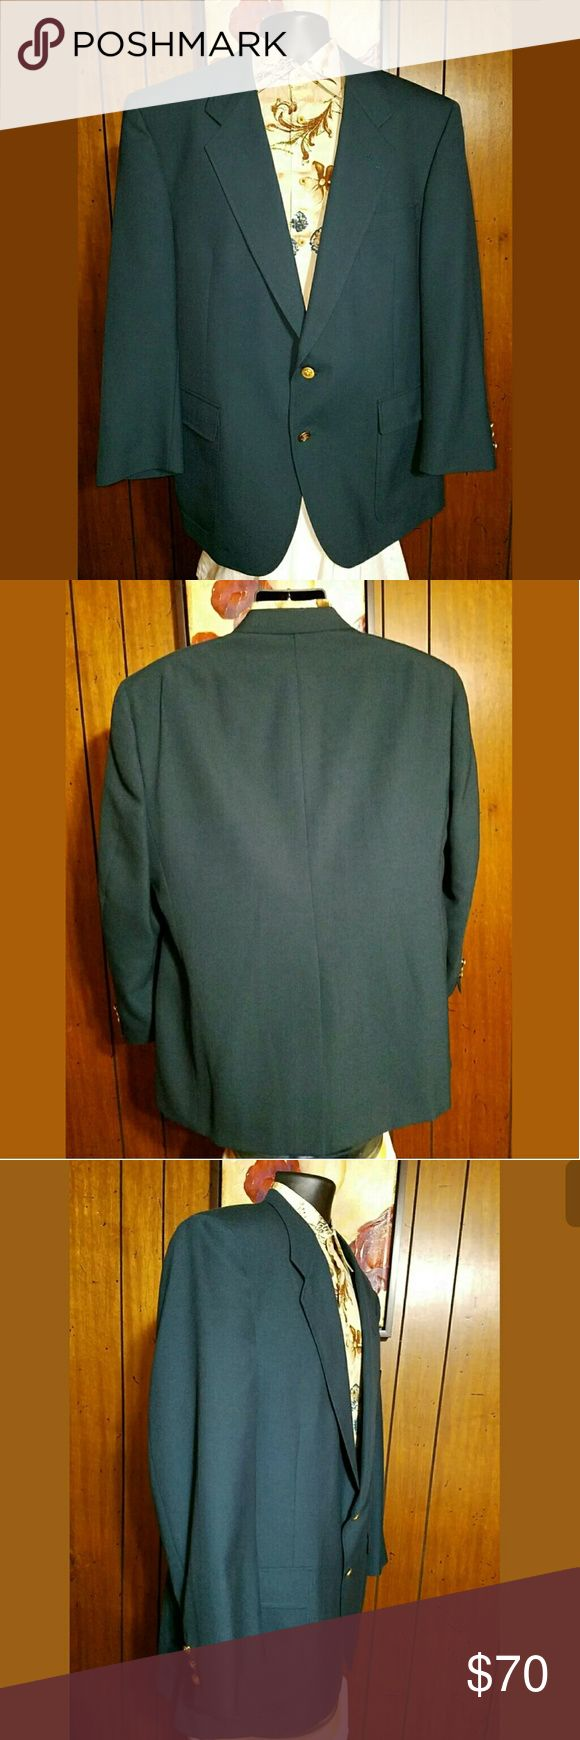 Jack Nicklaus Golf Masters Green Jacket Size 46R Jack Nicklaus Tournament Series Golf Masters Green Blazer Jacket 46R Gold Button By Hart Shaffner Marx  Excellent Pre-Owned Condition No rips stains or holes.  Feel free to ask any questions and make offers.  Jacket Measurements:  Pit to Pit: 46 Length: 33 Sleeves: 24 Waist of Jacket: 42 Shoulders: 19 Hart Schaffner Marx Suits & Blazers Sport Coats & Blazers